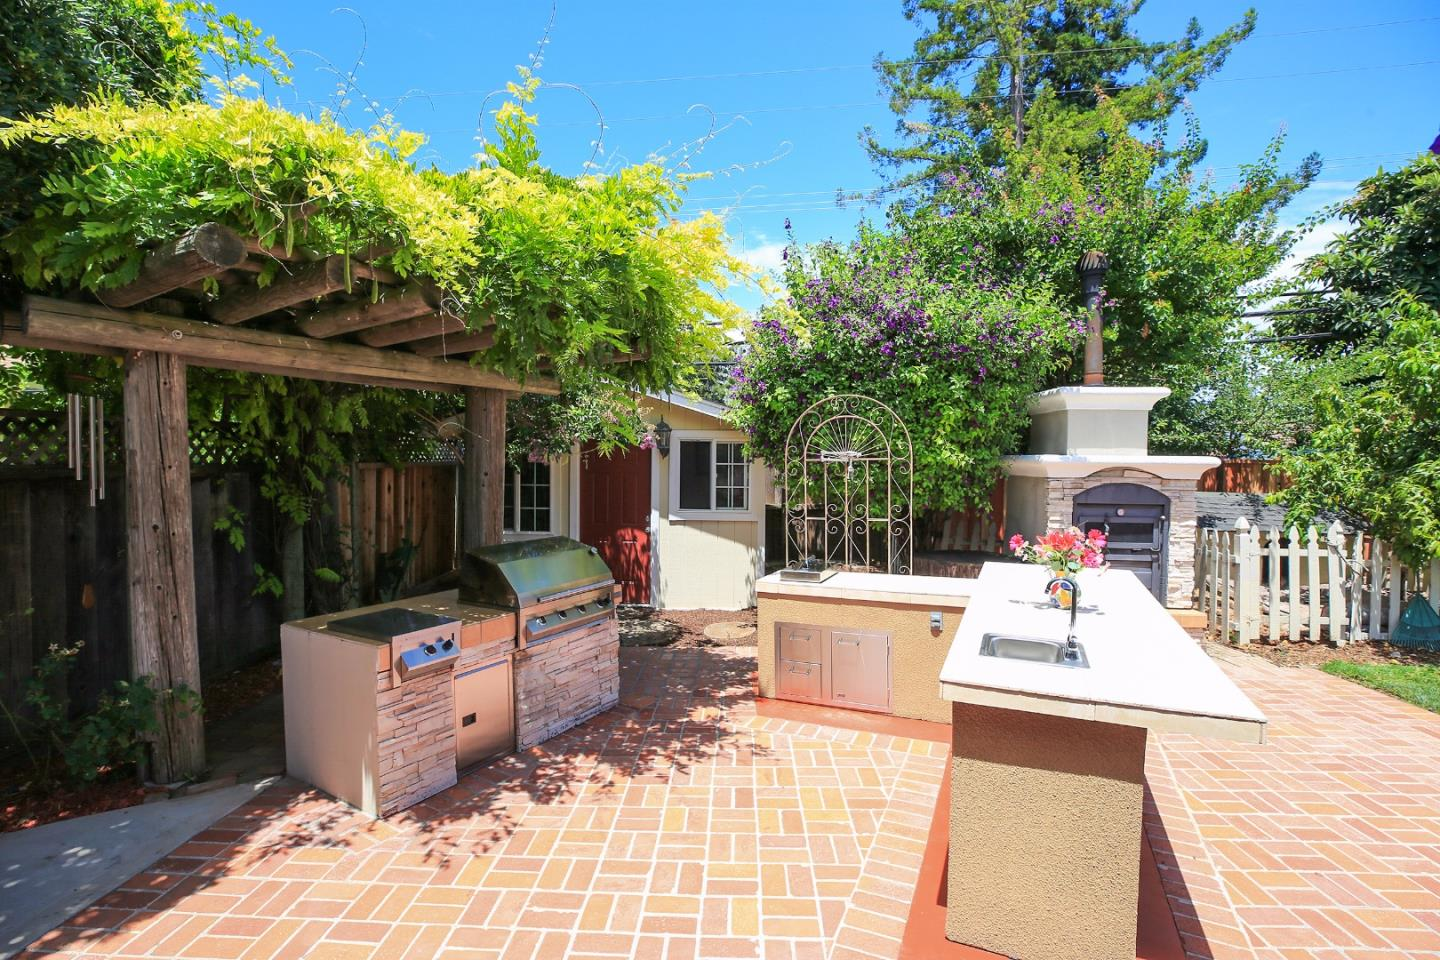 Additional photo for property listing at 830 San Pablo Drive  Mountain View, California 94043 United States